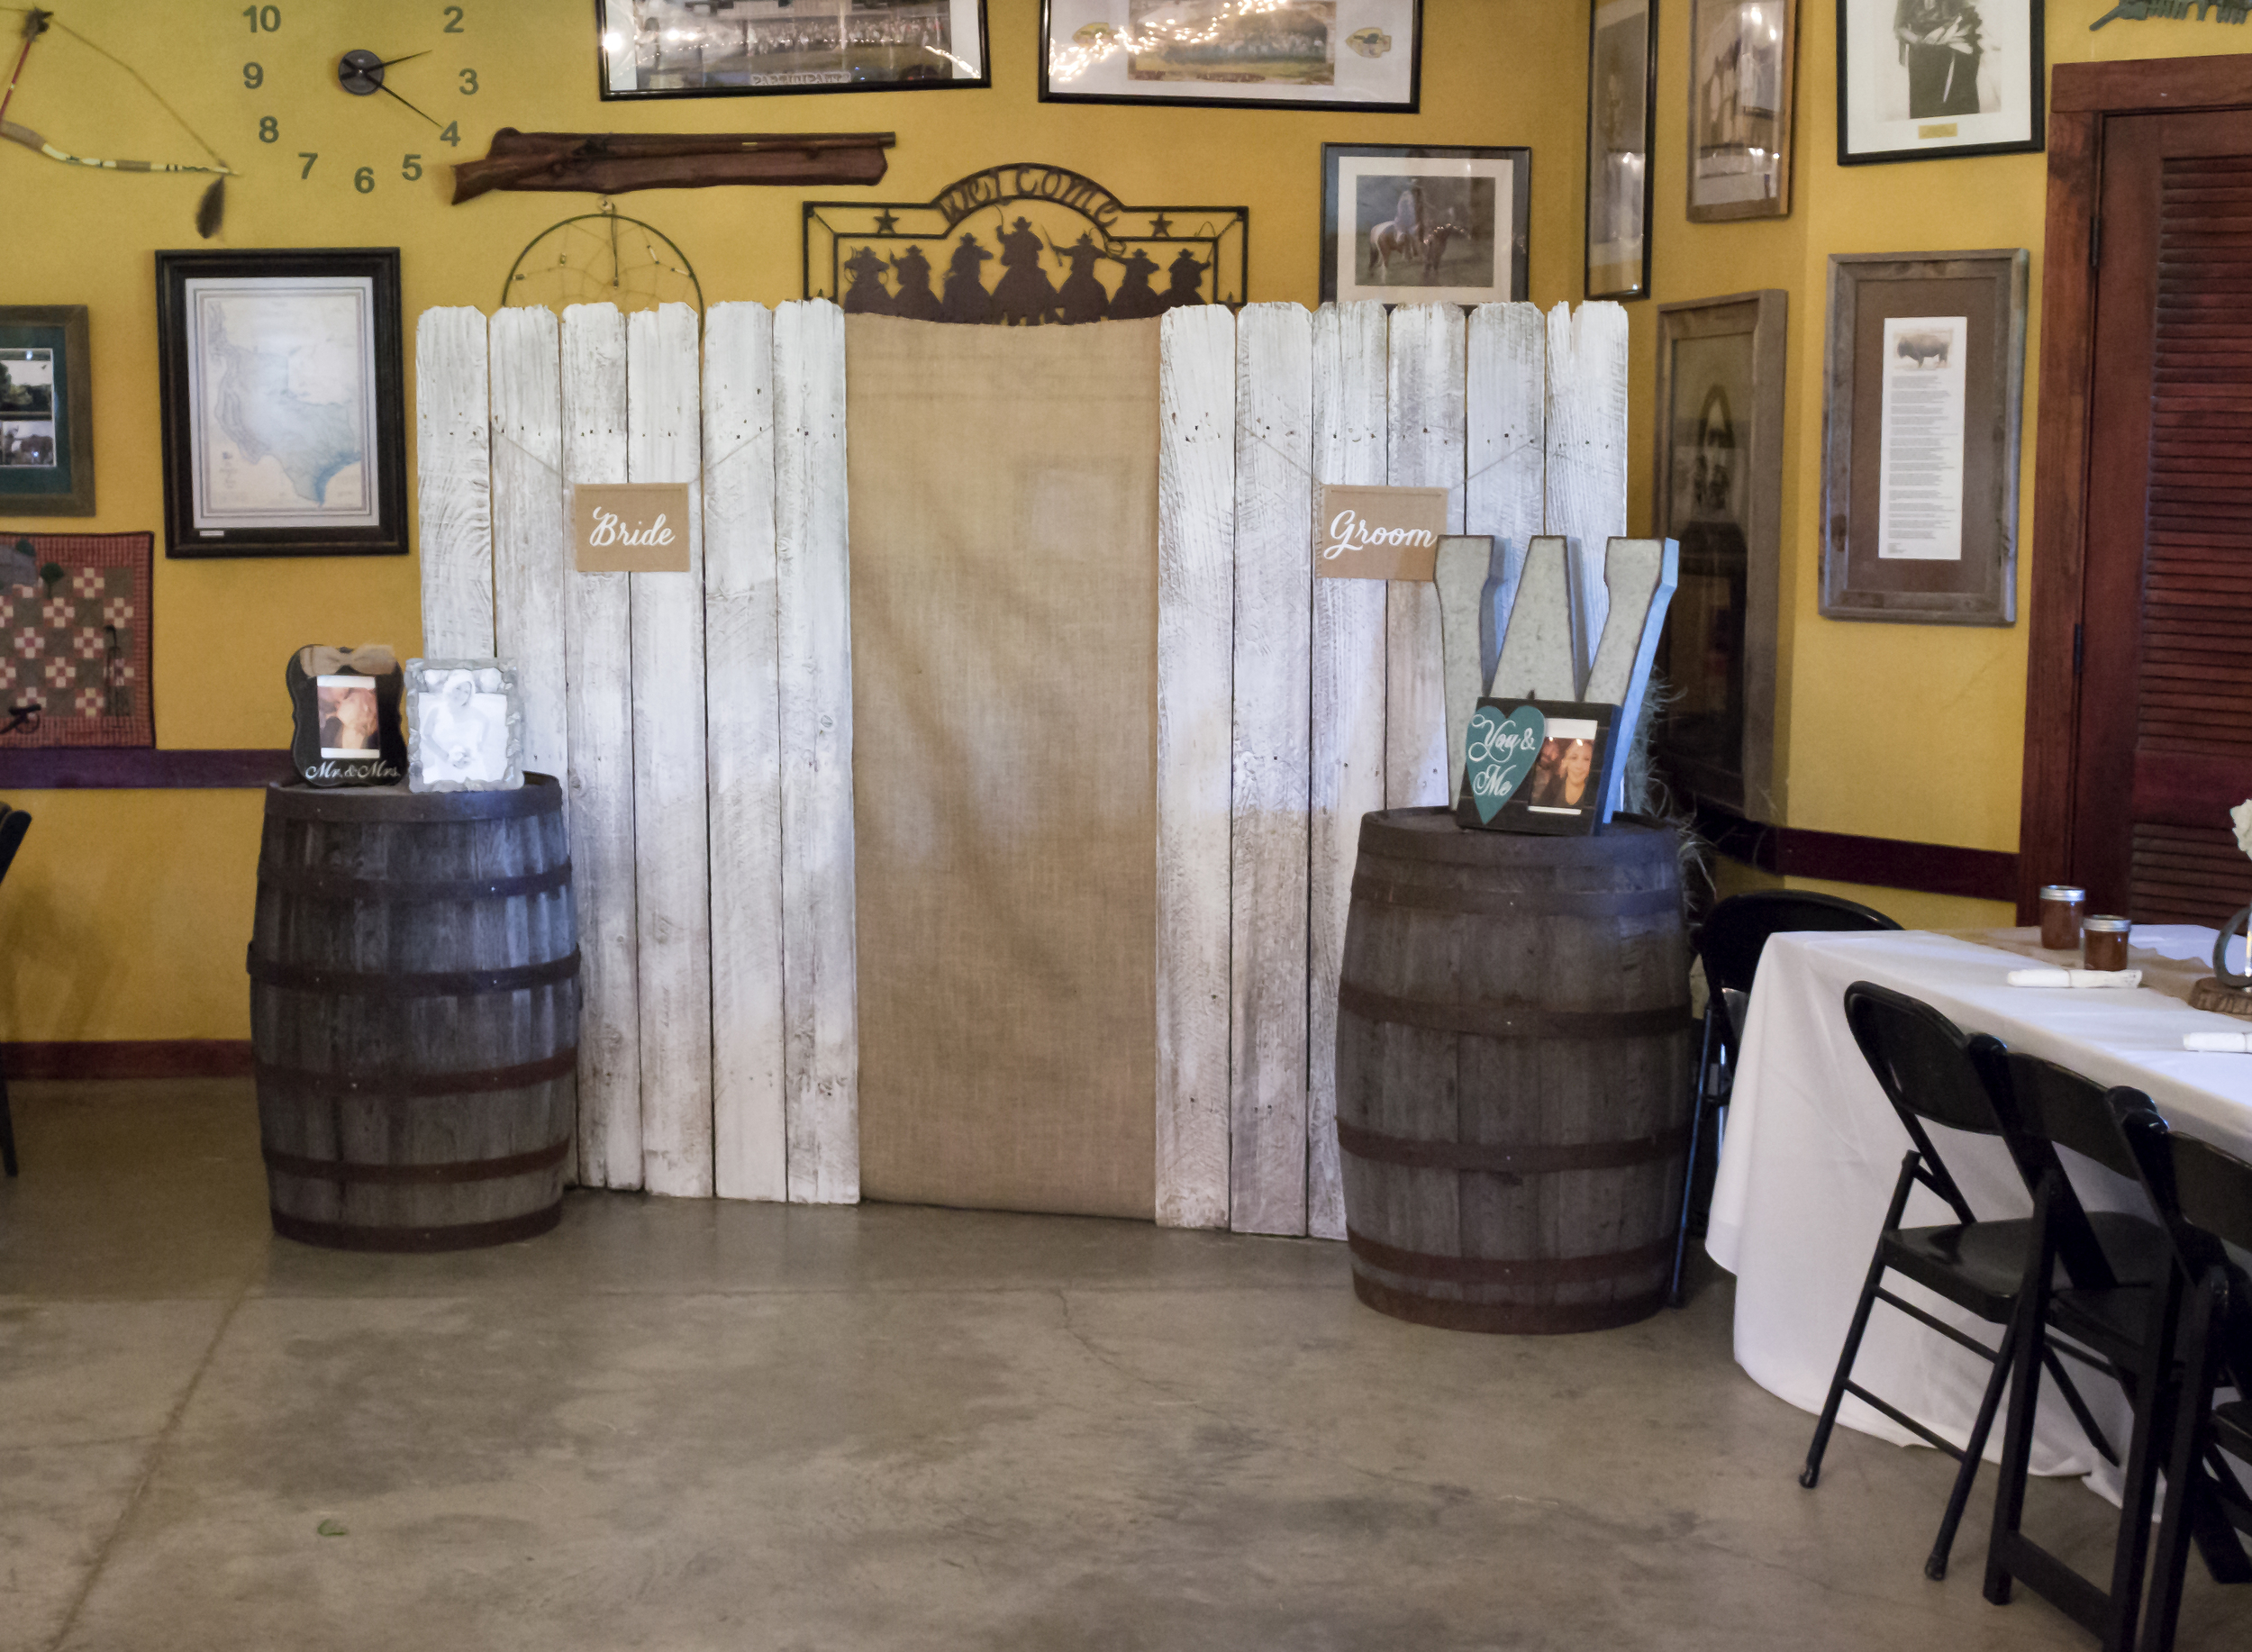 The Visitor's Center at the Historic Old Fort Parker site in Groesbeck, Texas was a wedding venue.  The wedding had to be moved indoors due to recent flooding on the grounds.